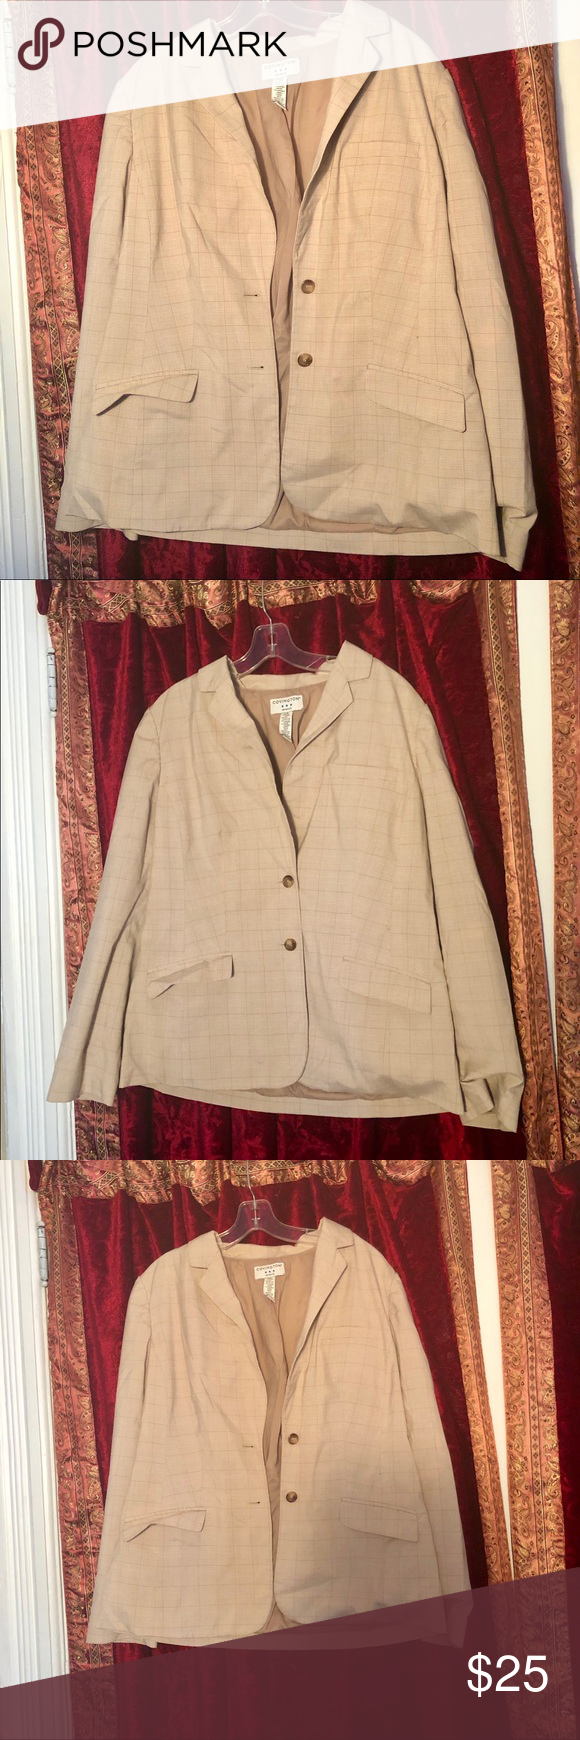 Covington Dressy Work Jacket Only Worn Once Like New Beige With Subtle Stripes Detail Double Button Up 4 Buttons On Eac Work Jackets Clothes Design Dressy [ 1740 x 580 Pixel ]